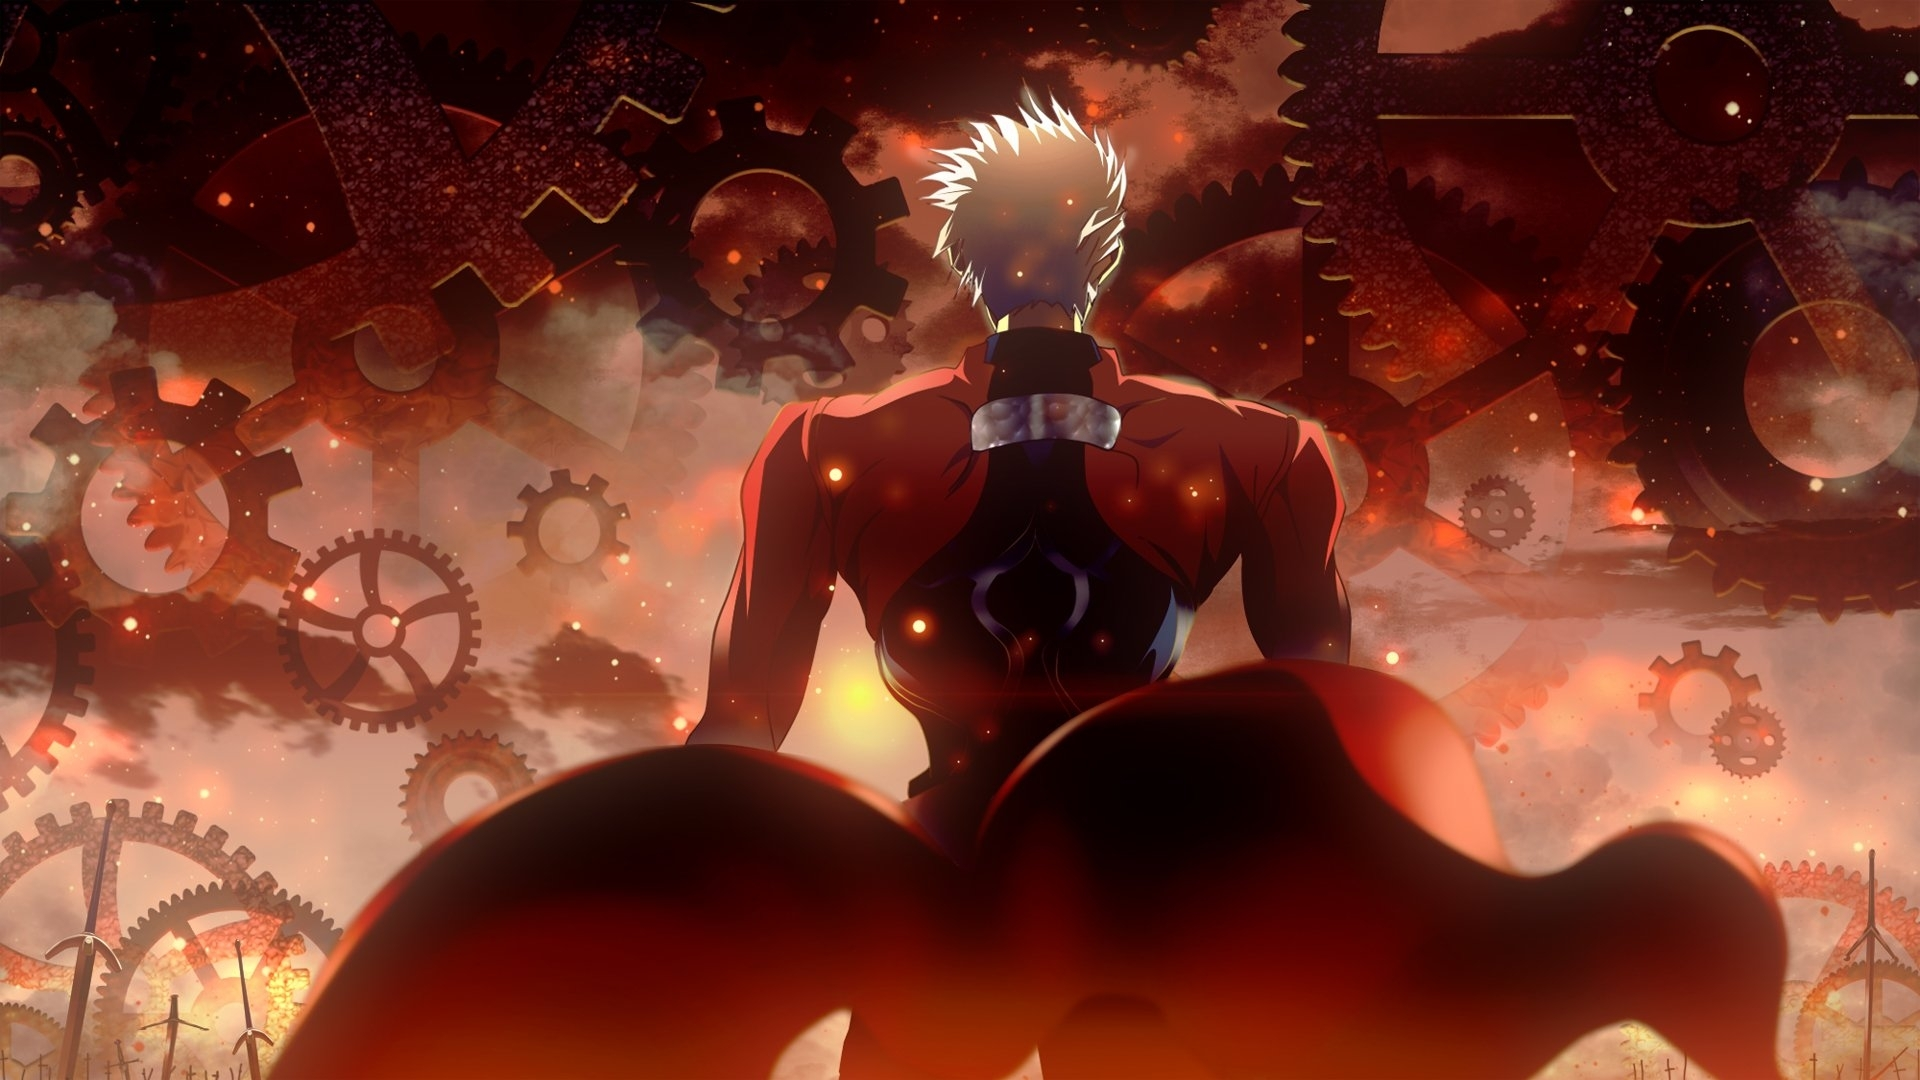 fate/stay night: unlimited blade works full hd fond d'écran and